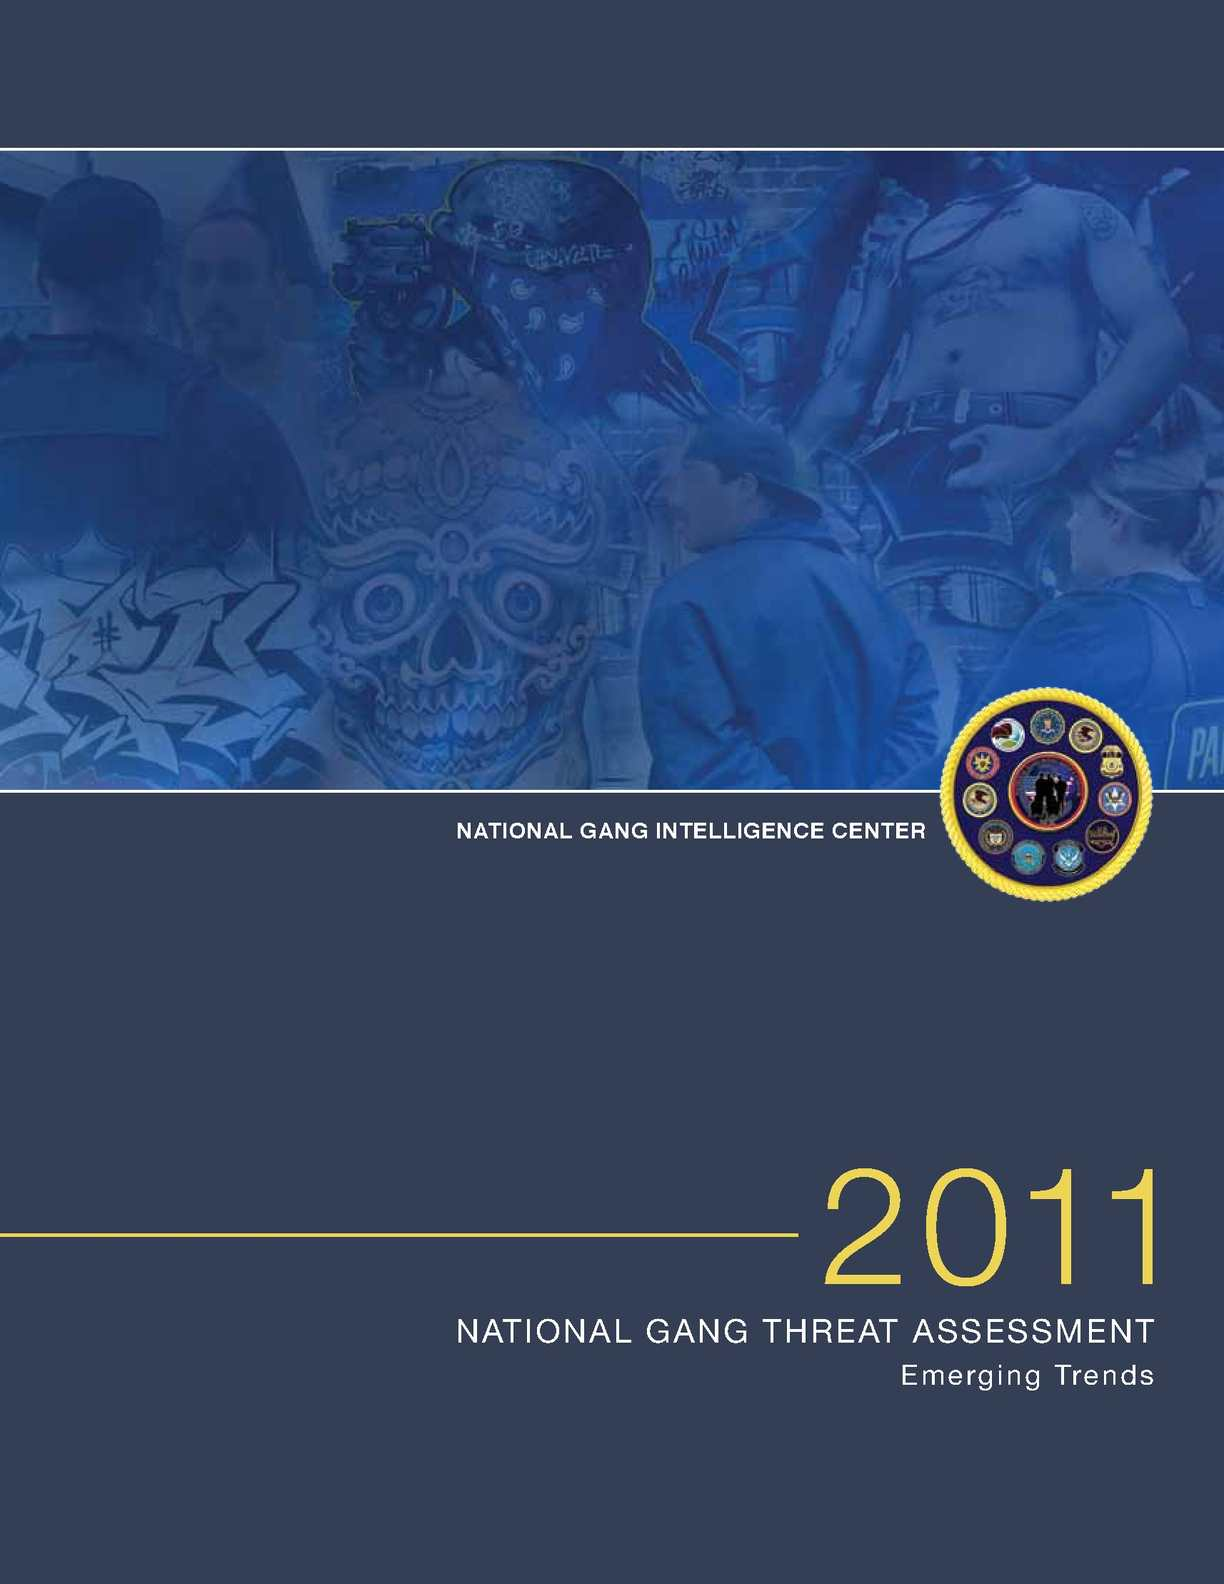 Calaméo - 2011 National Gang Threat Assessment Emerging Trends